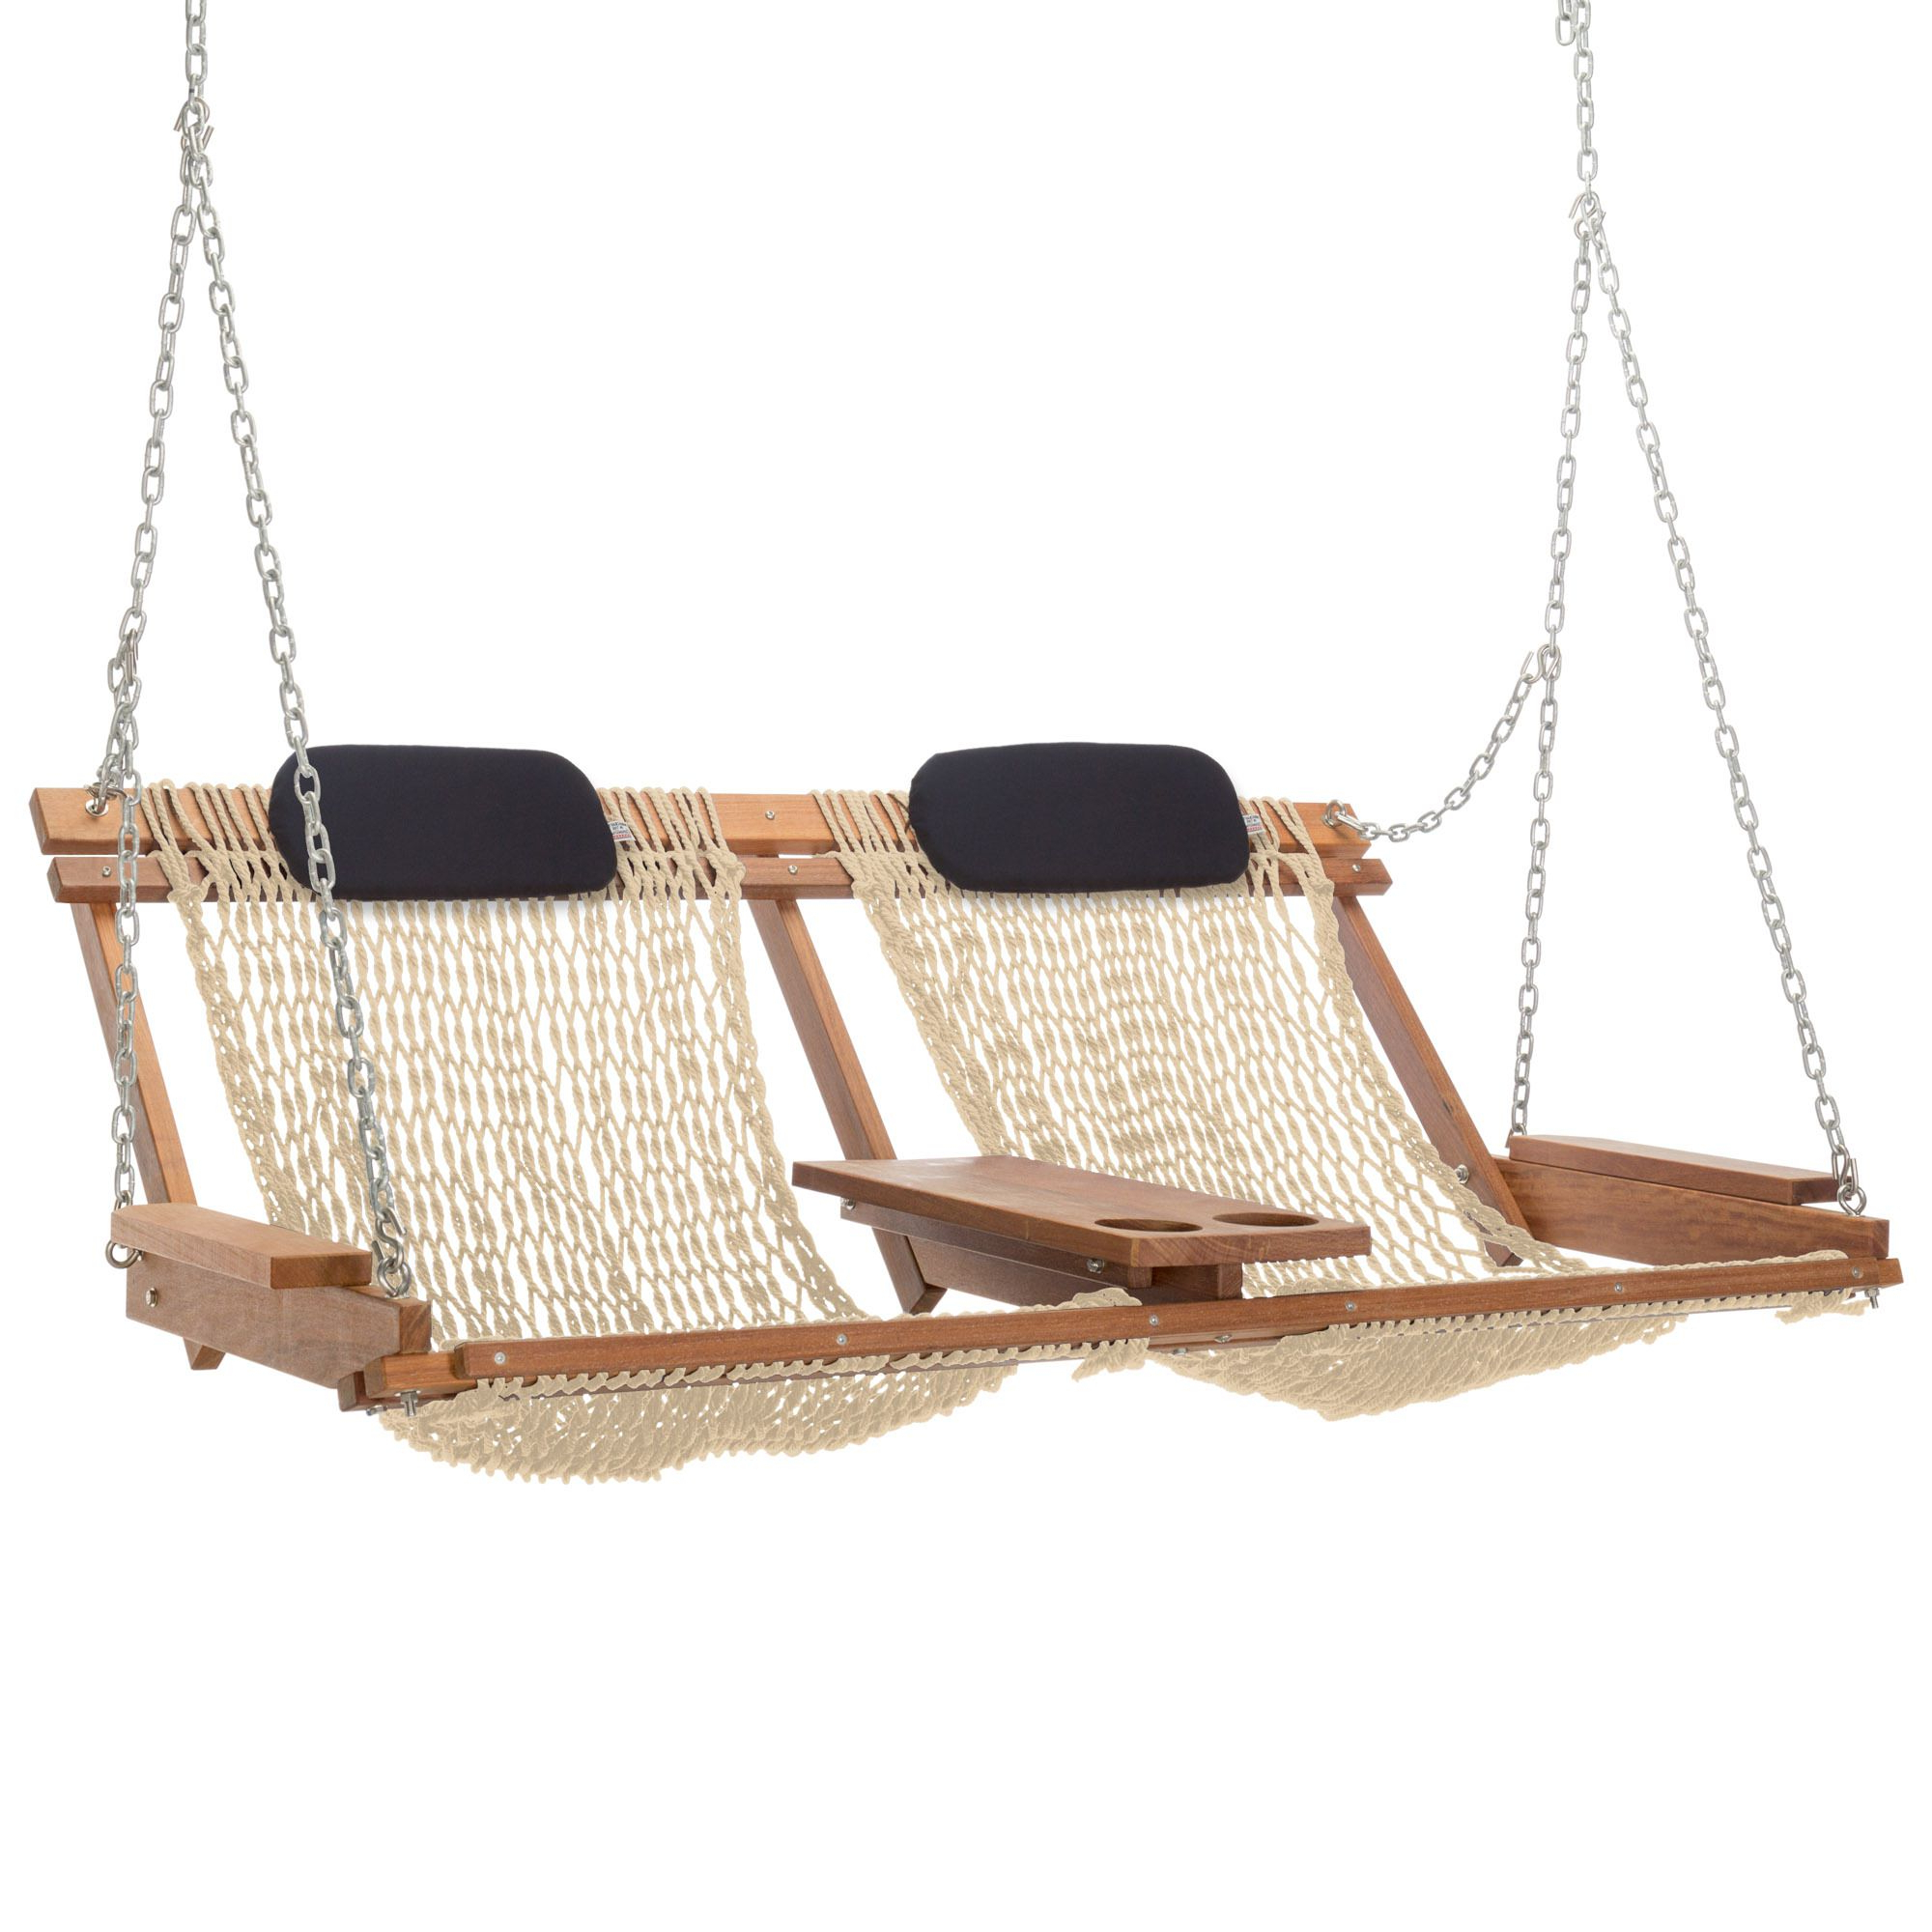 Porch Swings With Chain With Regard To 2019 Welcome To Nags Head Hammocks (View 9 of 30)